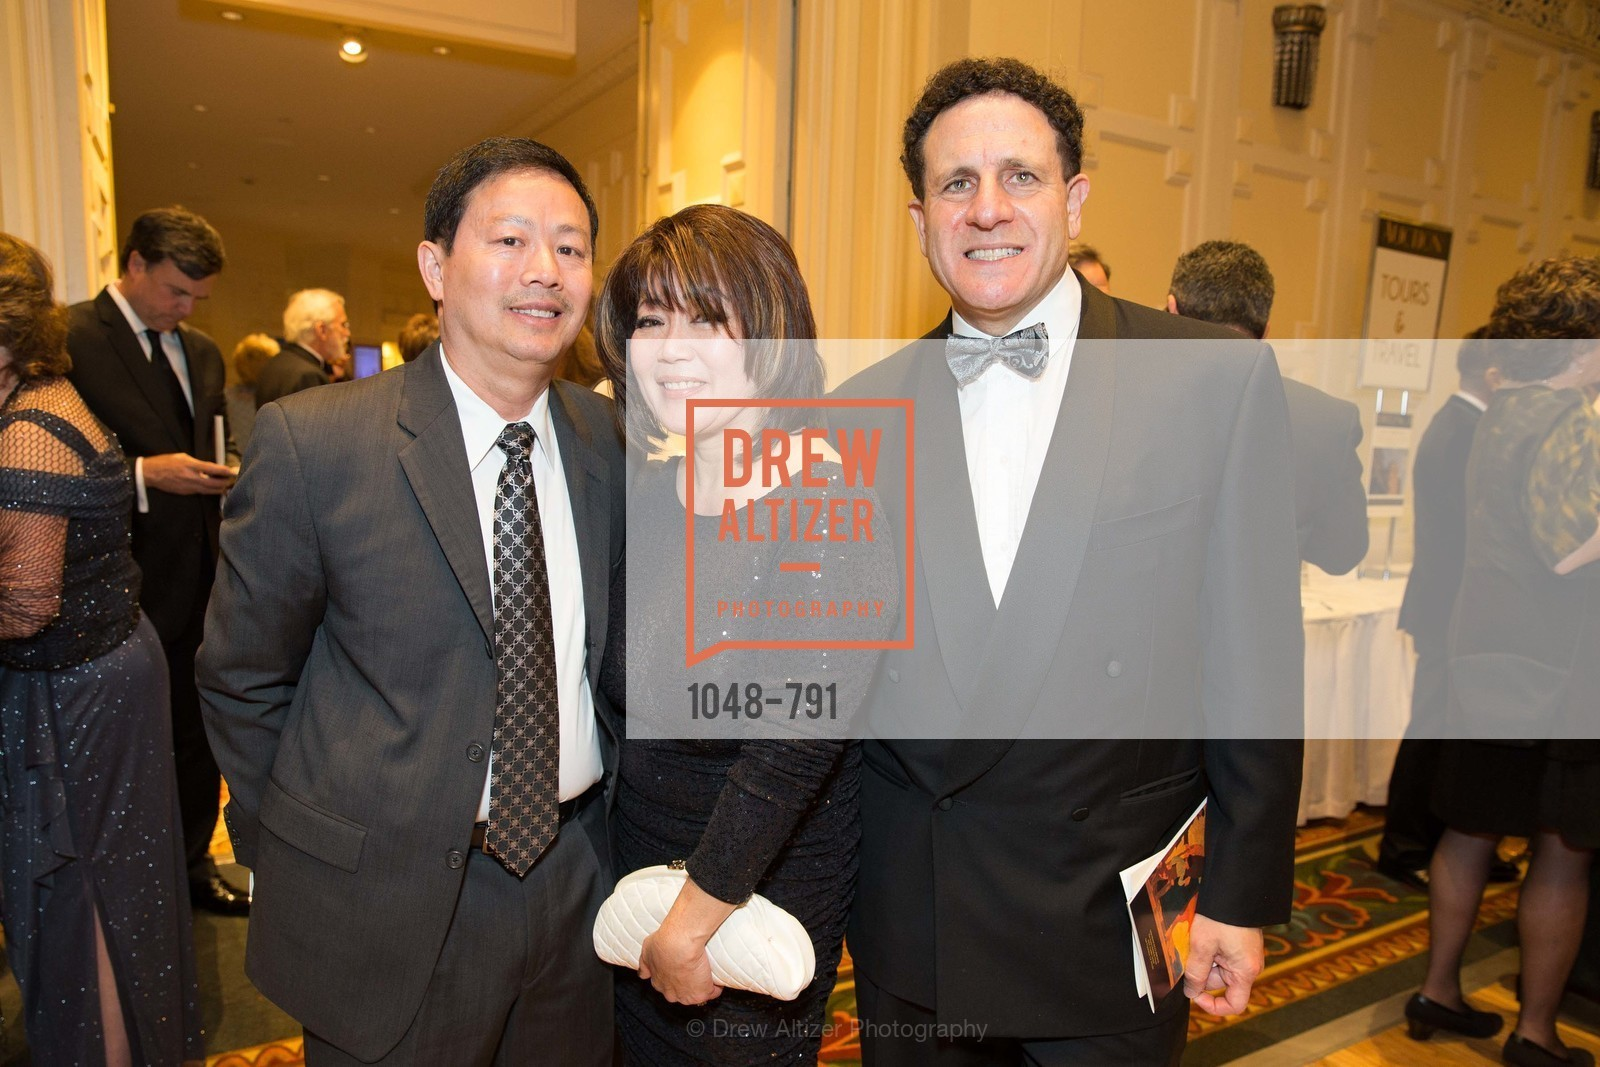 Harold Kan, Deanna Kan, SAN FRANCISCO HERITAGE Soiree 2015, US, April 18th, 2015,Drew Altizer, Drew Altizer Photography, full-service agency, private events, San Francisco photographer, photographer california